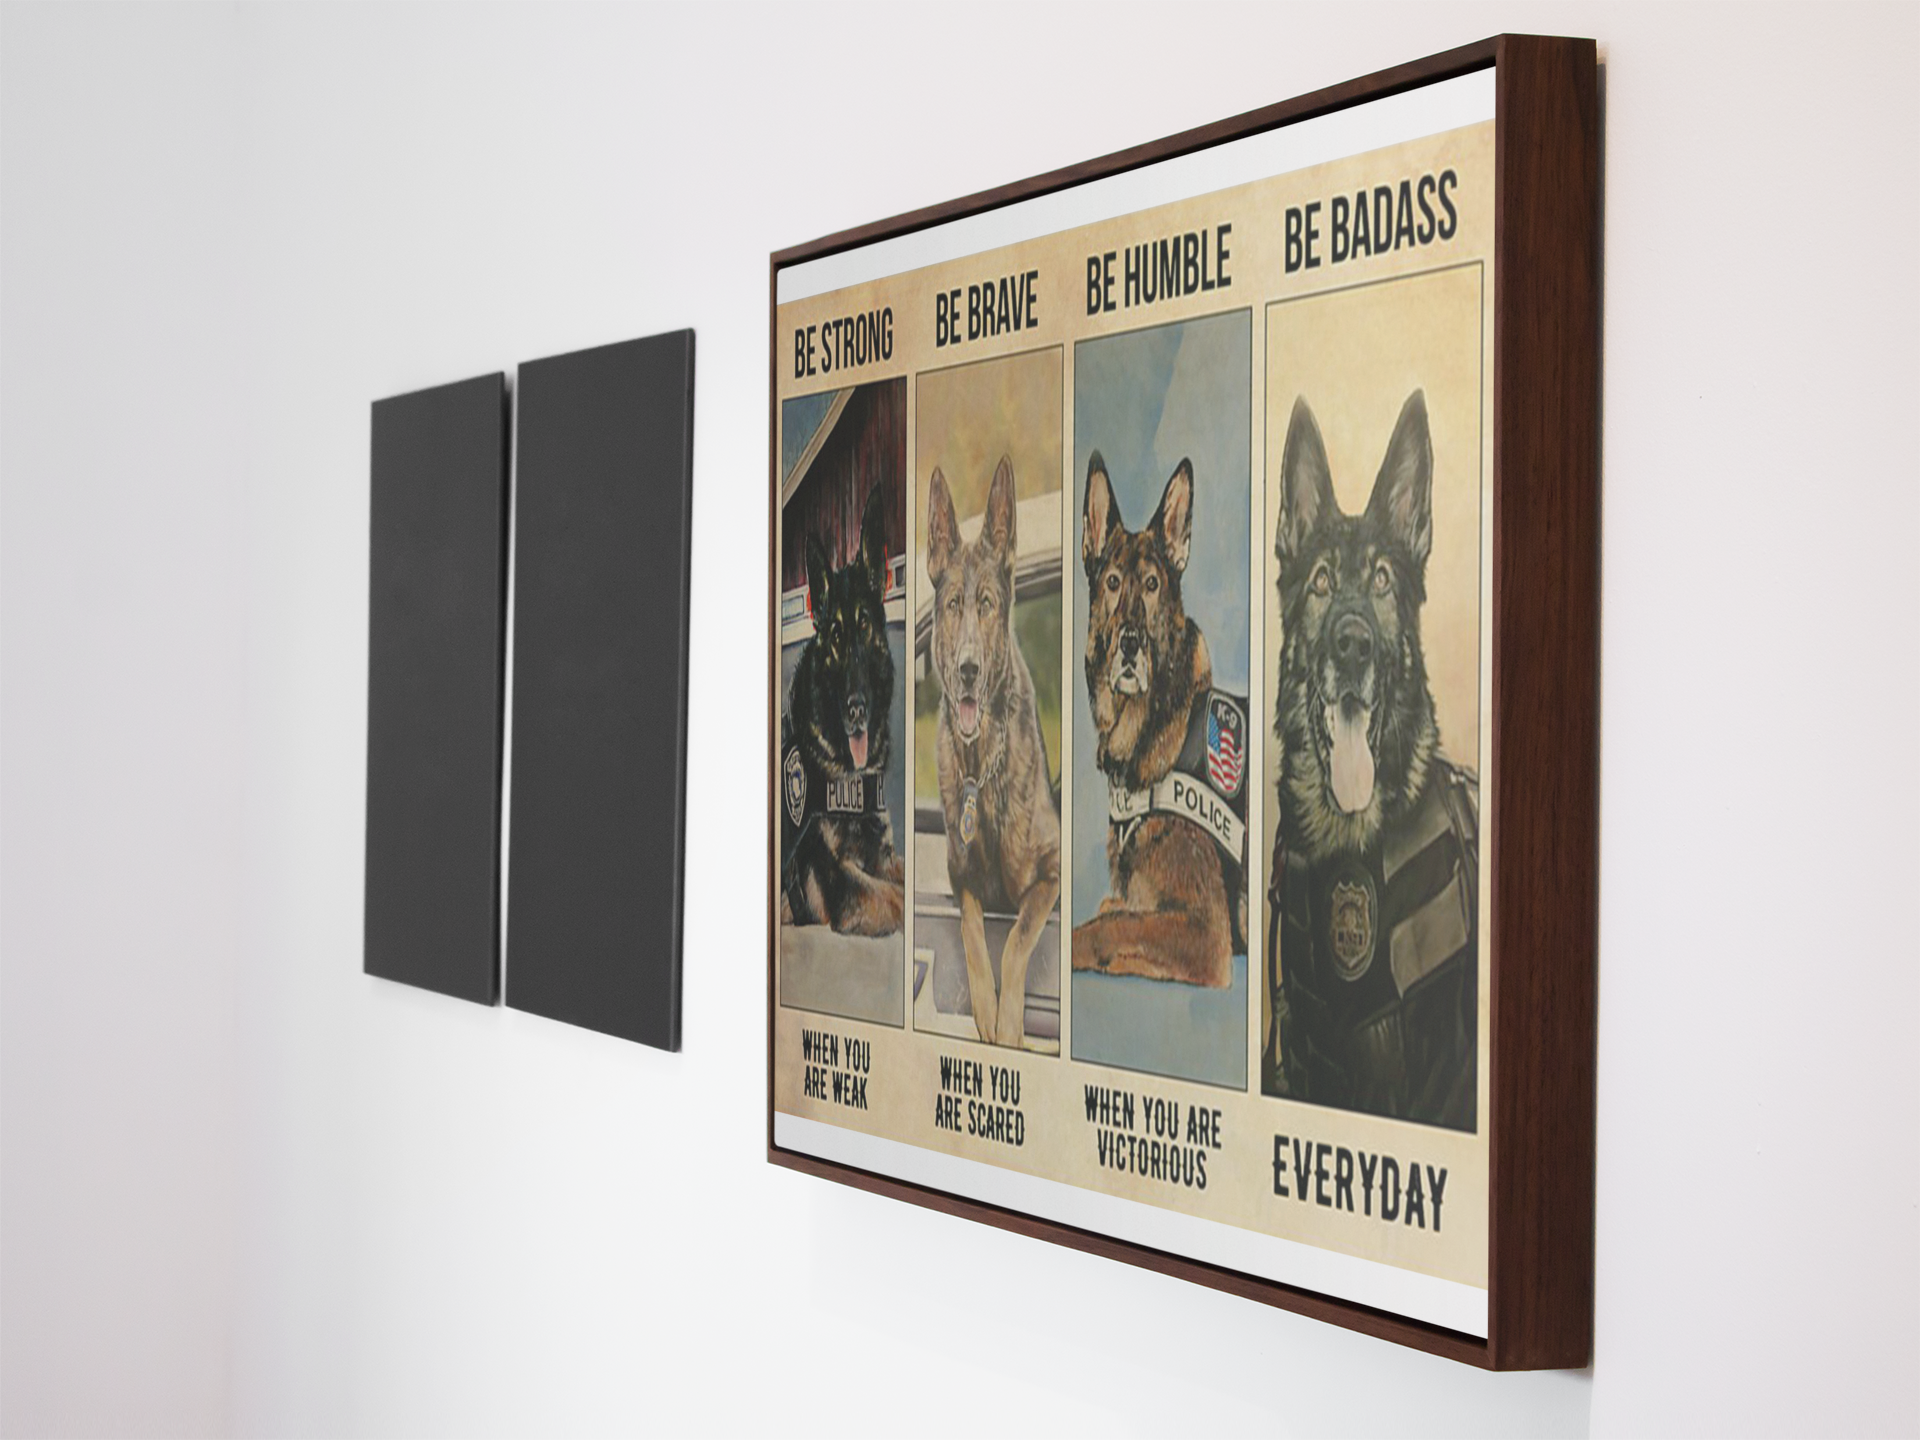 Dog German Shepherd be strong be brave be human be badass poster